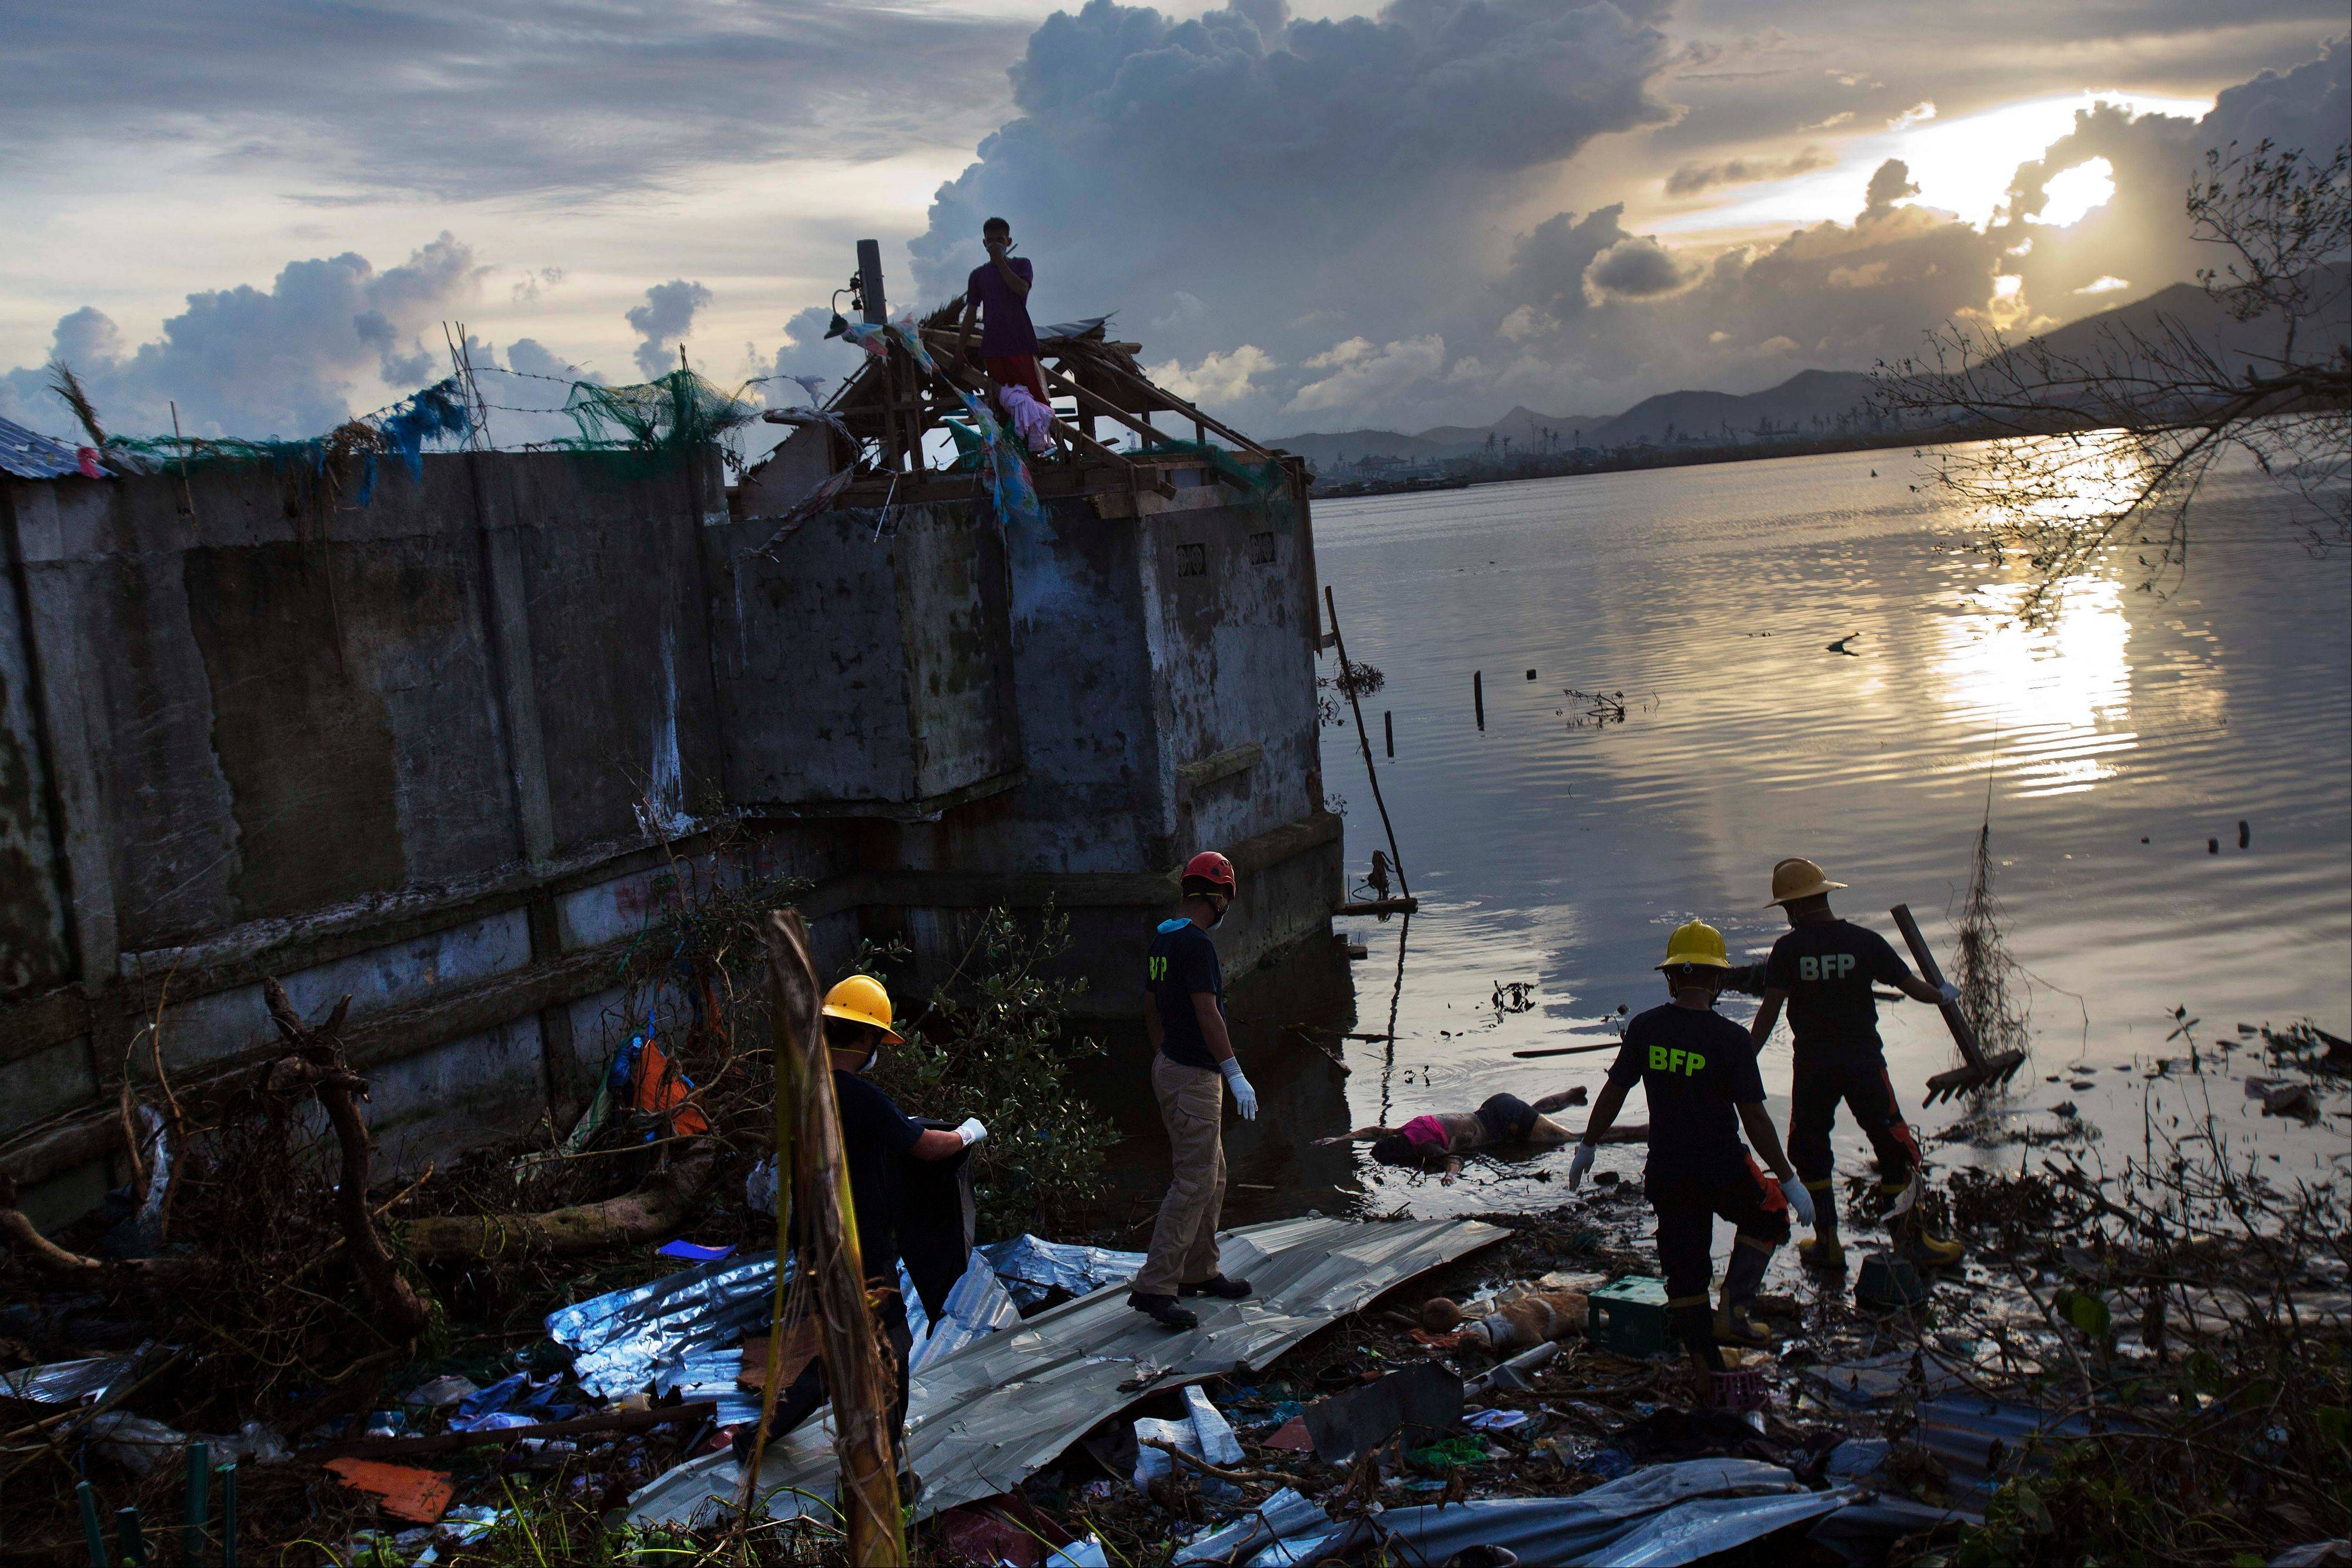 A Philippines rescue team wades into floodwaters to retrieve a body in the Typhoon Haiyan ravaged city of Tacloban, central Philippines on Wednesday, Nov. 13, 2013.